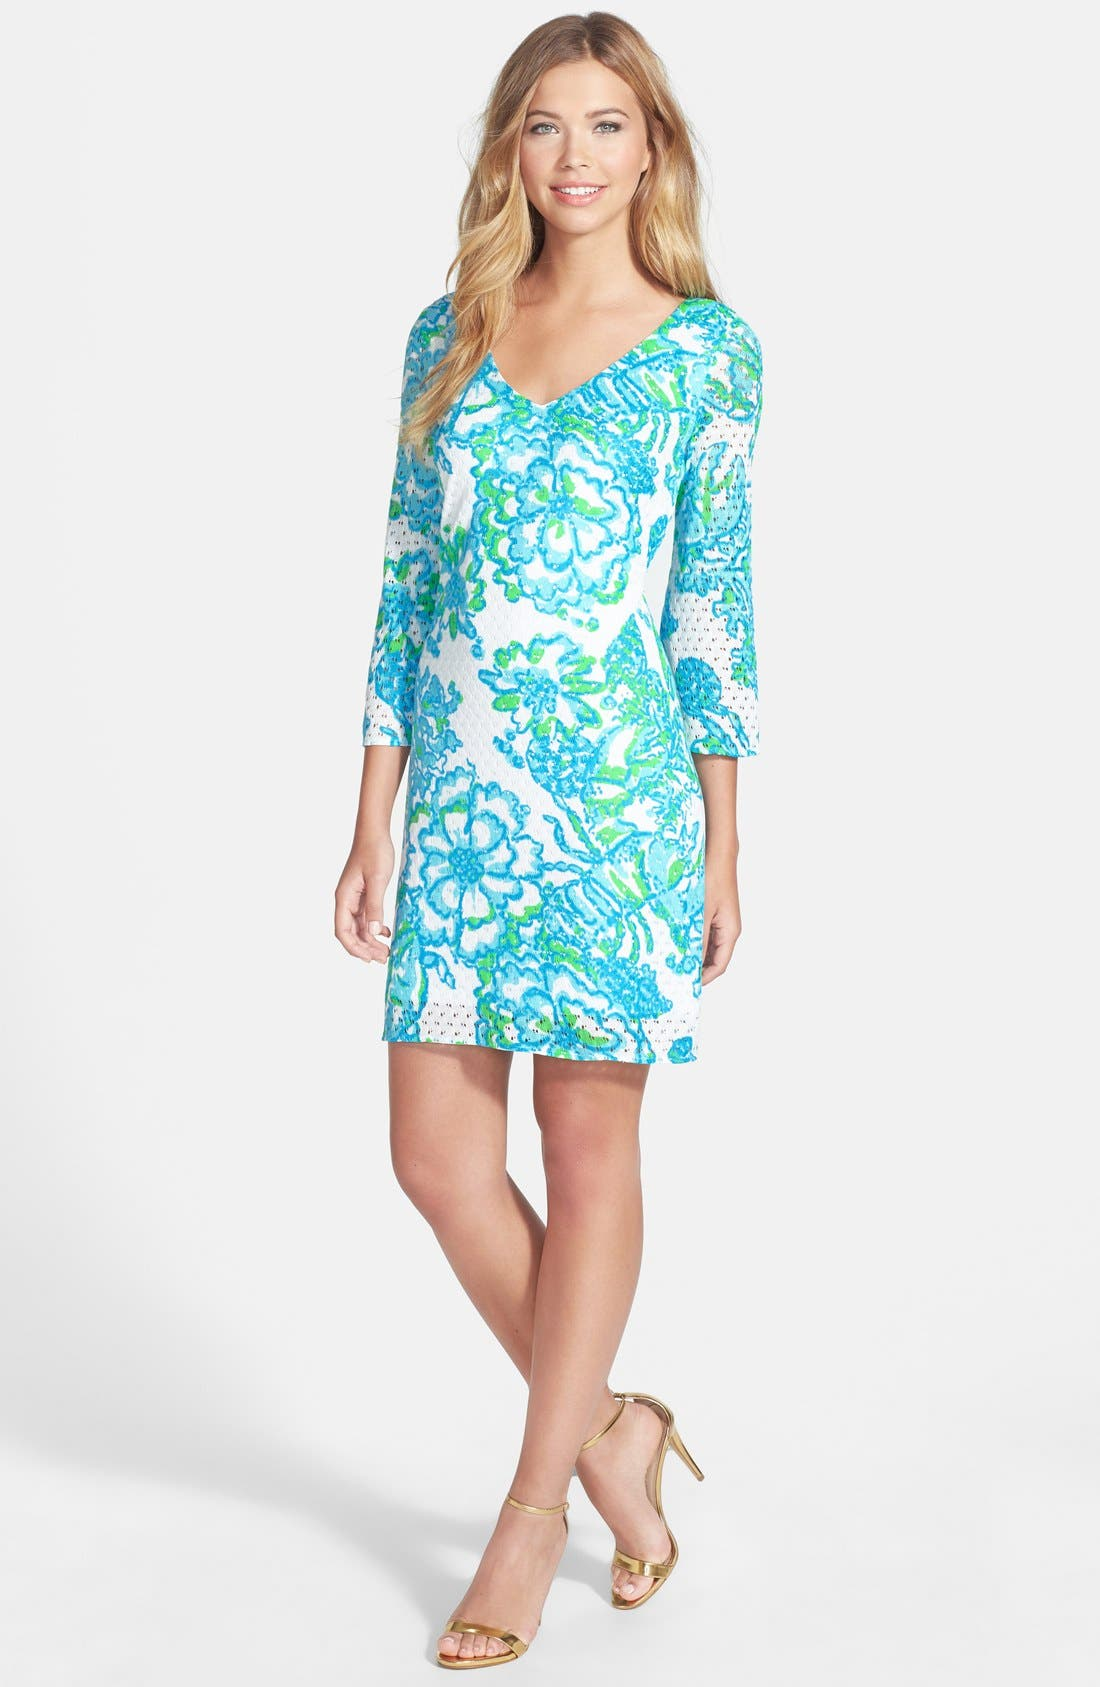 Alternate Image 1 Selected - Lilly Pulitzer® 'Alden' Print Mesh Lace Shift Dress